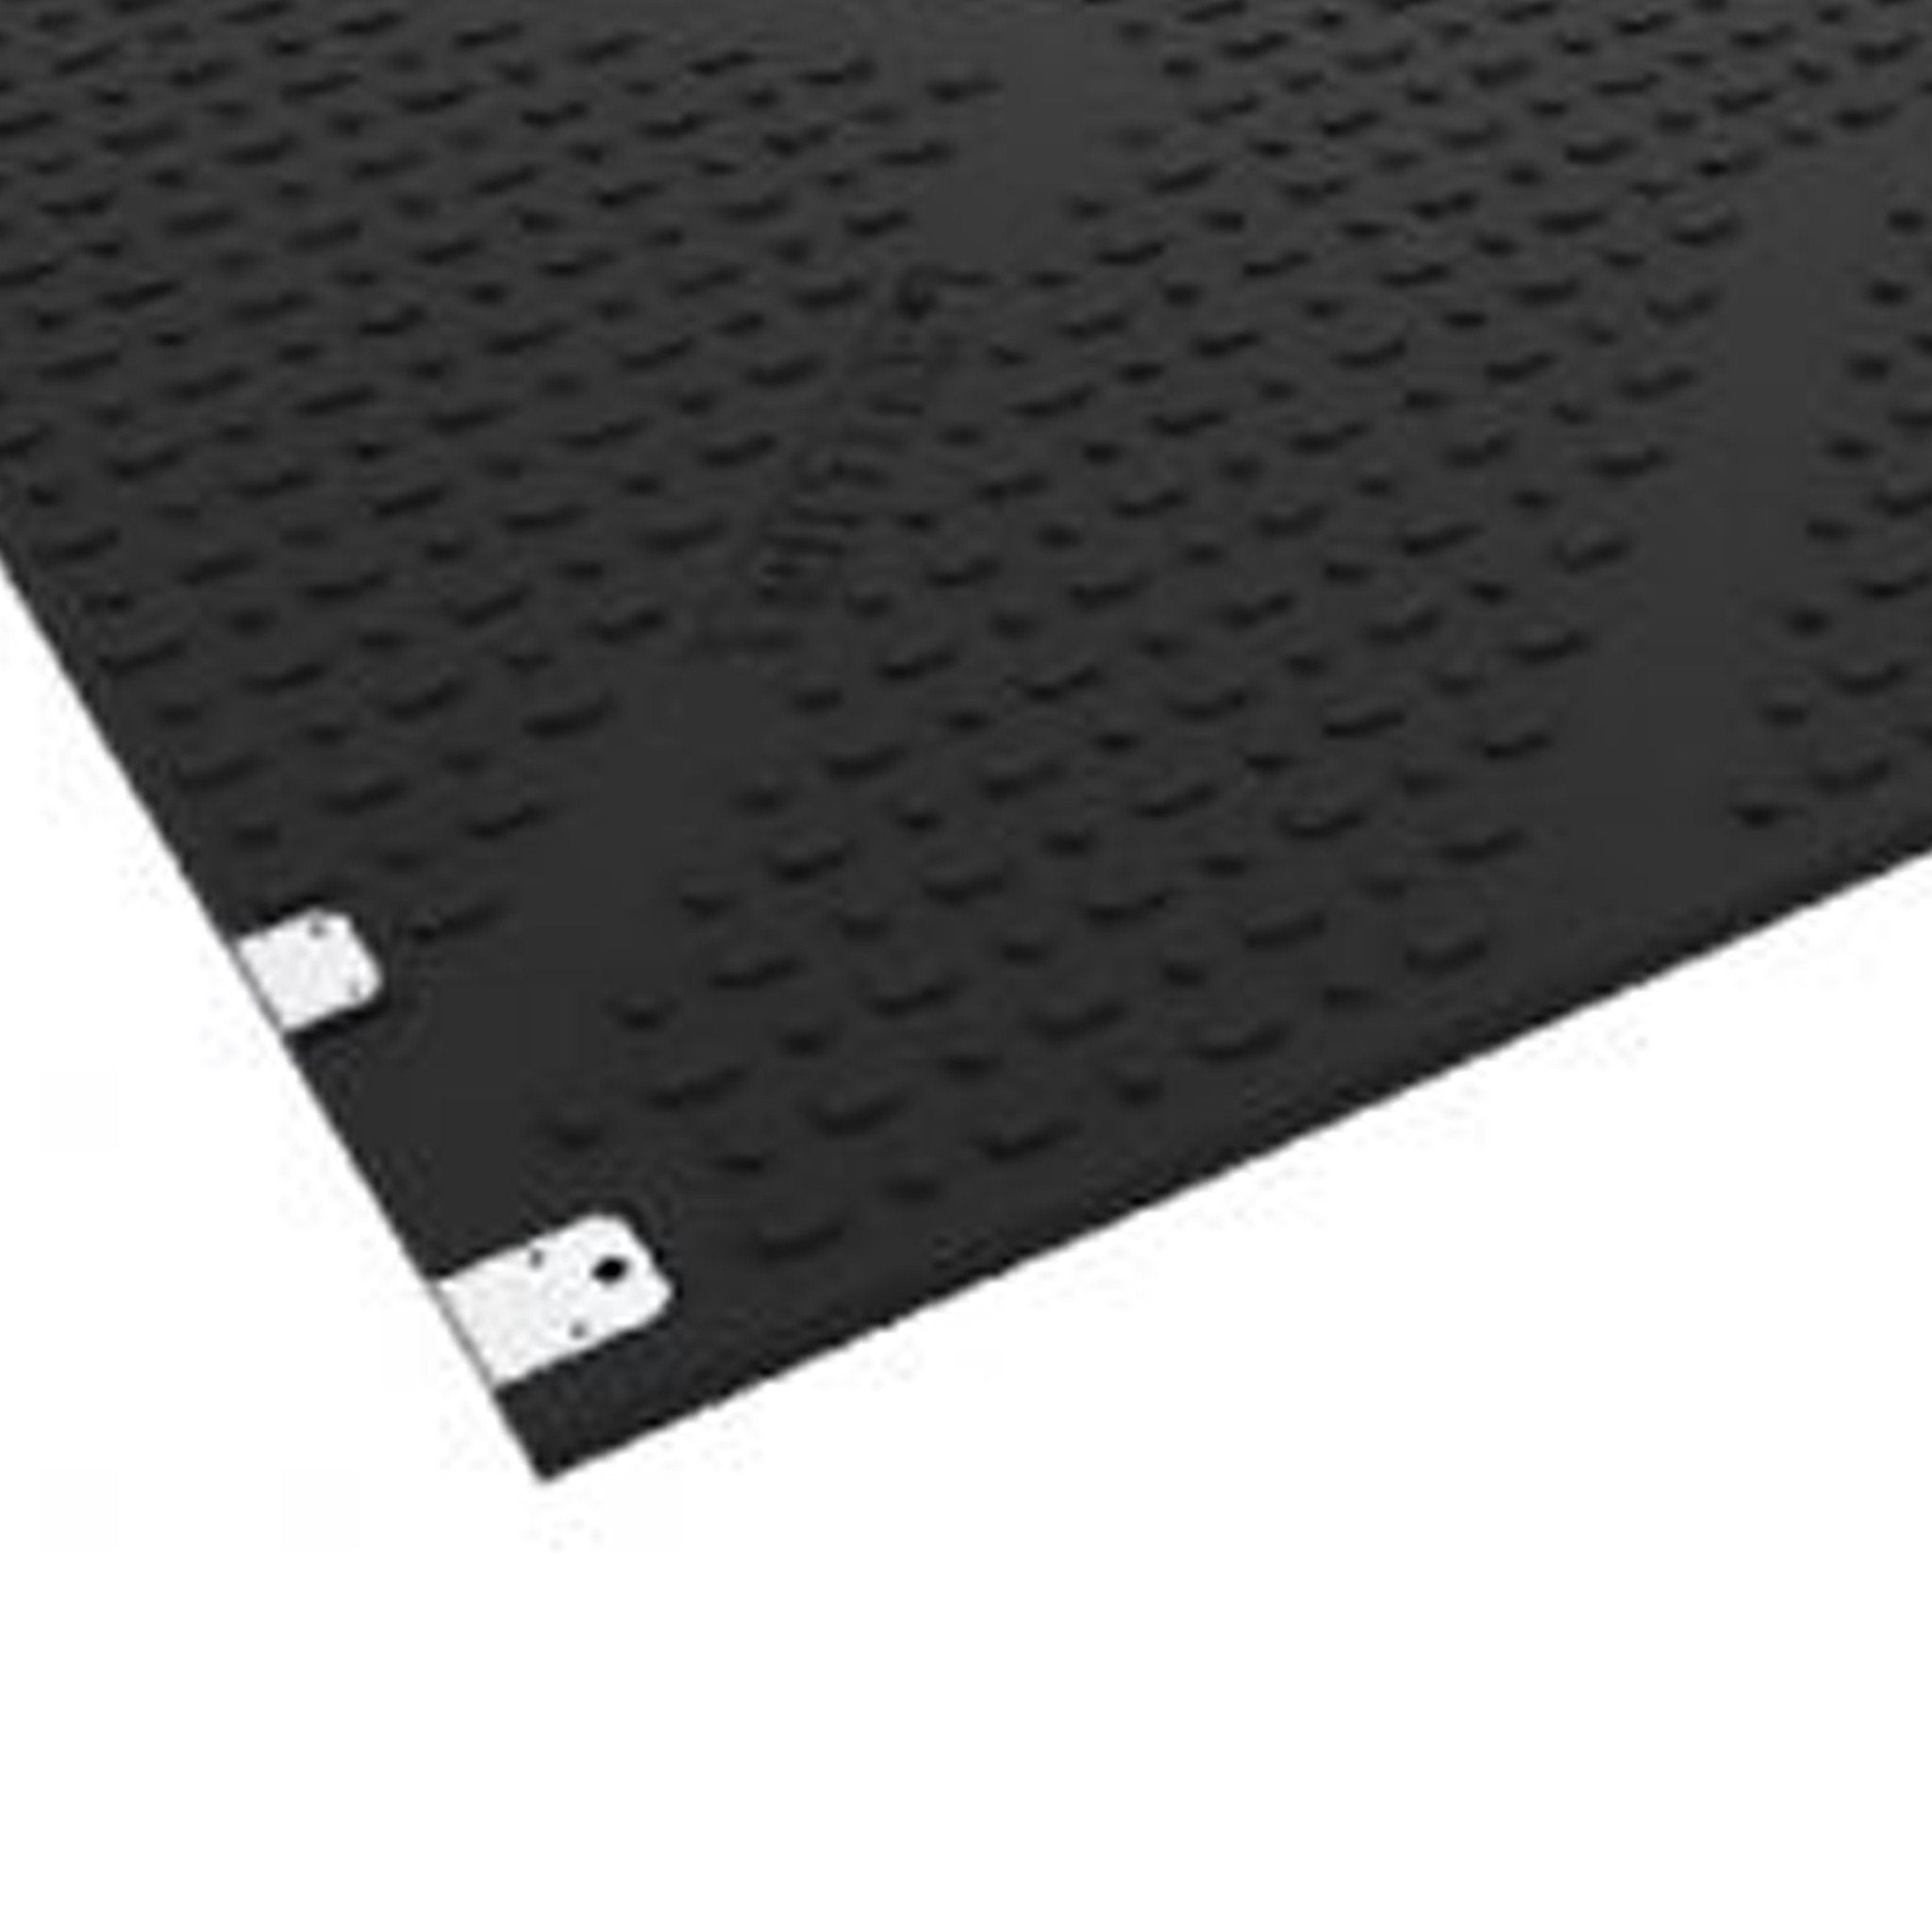 Checkers Tufftrak STD PE1000 Floor Panel